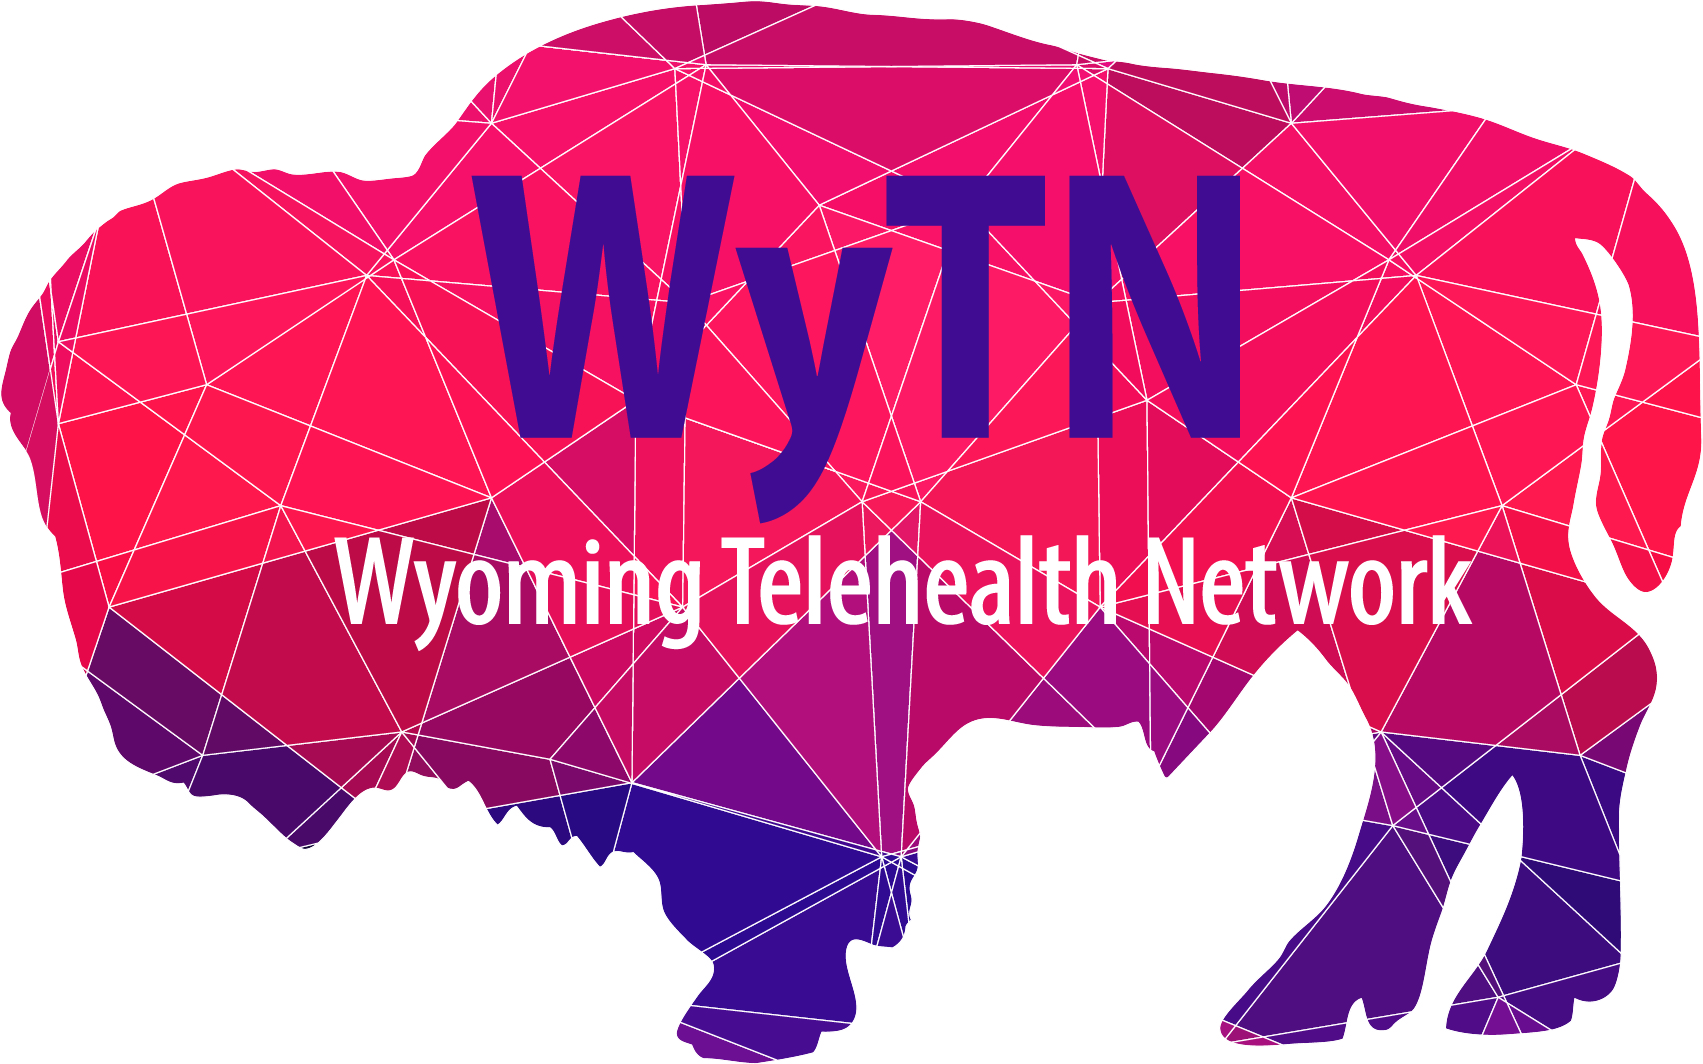 Wyoming Telehealth Network